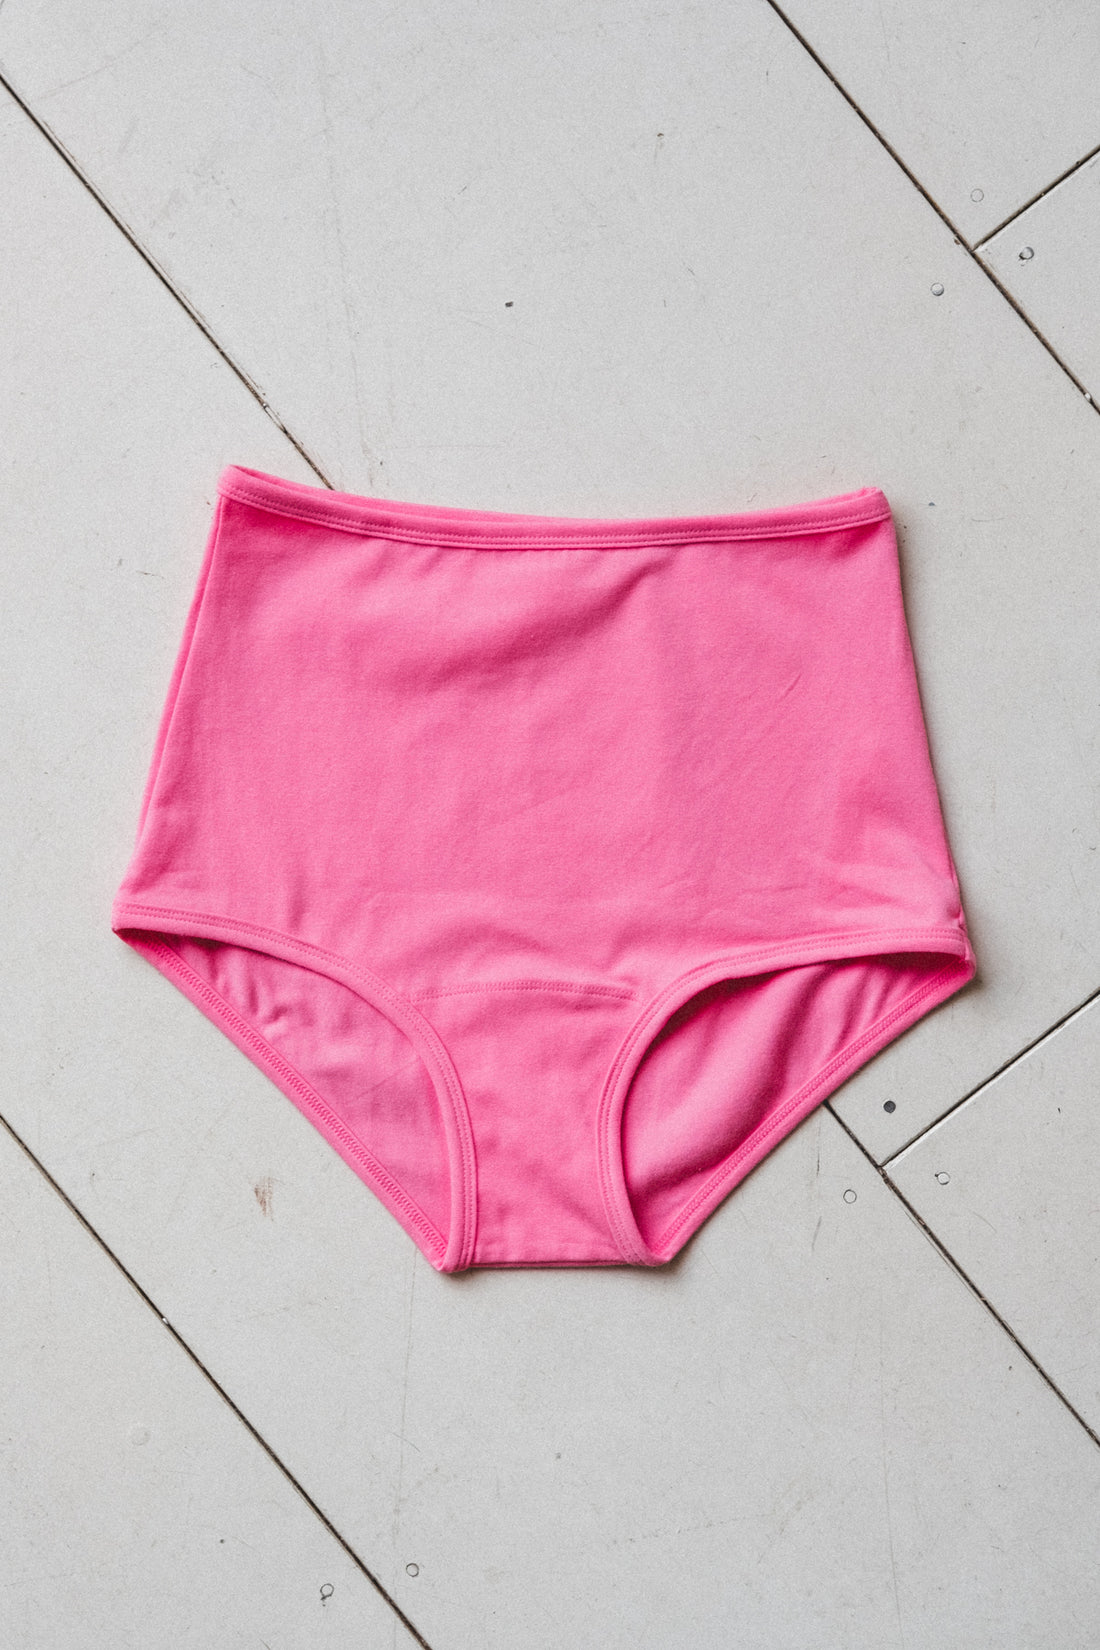 HIGH RISE UNDIES IN BUBBLE GUM